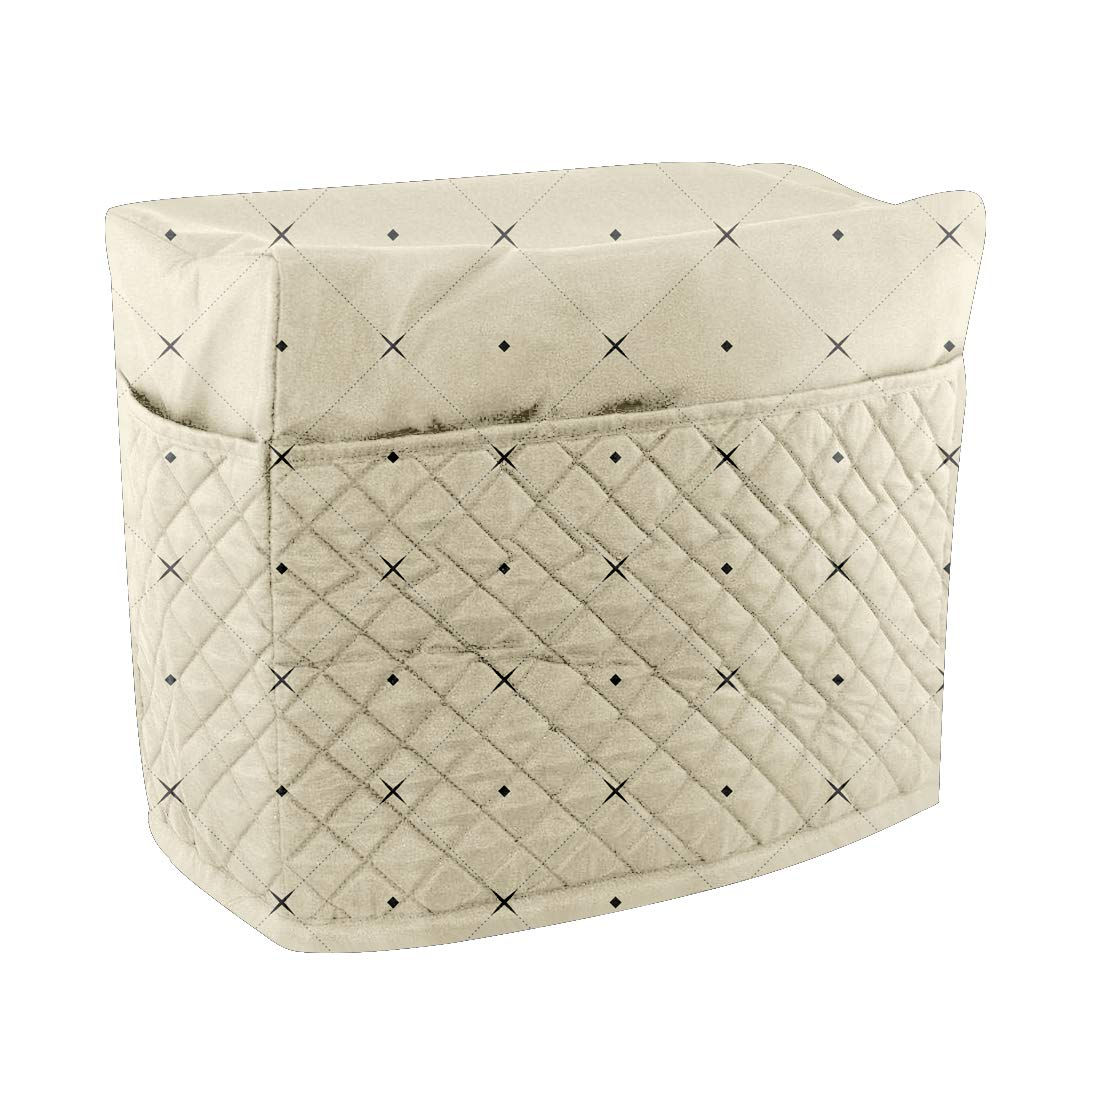 Dust Cover Protector Compatible with Brother and Singer Sewing Machine Quilted Sewing Machine Cover with Pockets Beige Sewing Machine Case Dust Cover